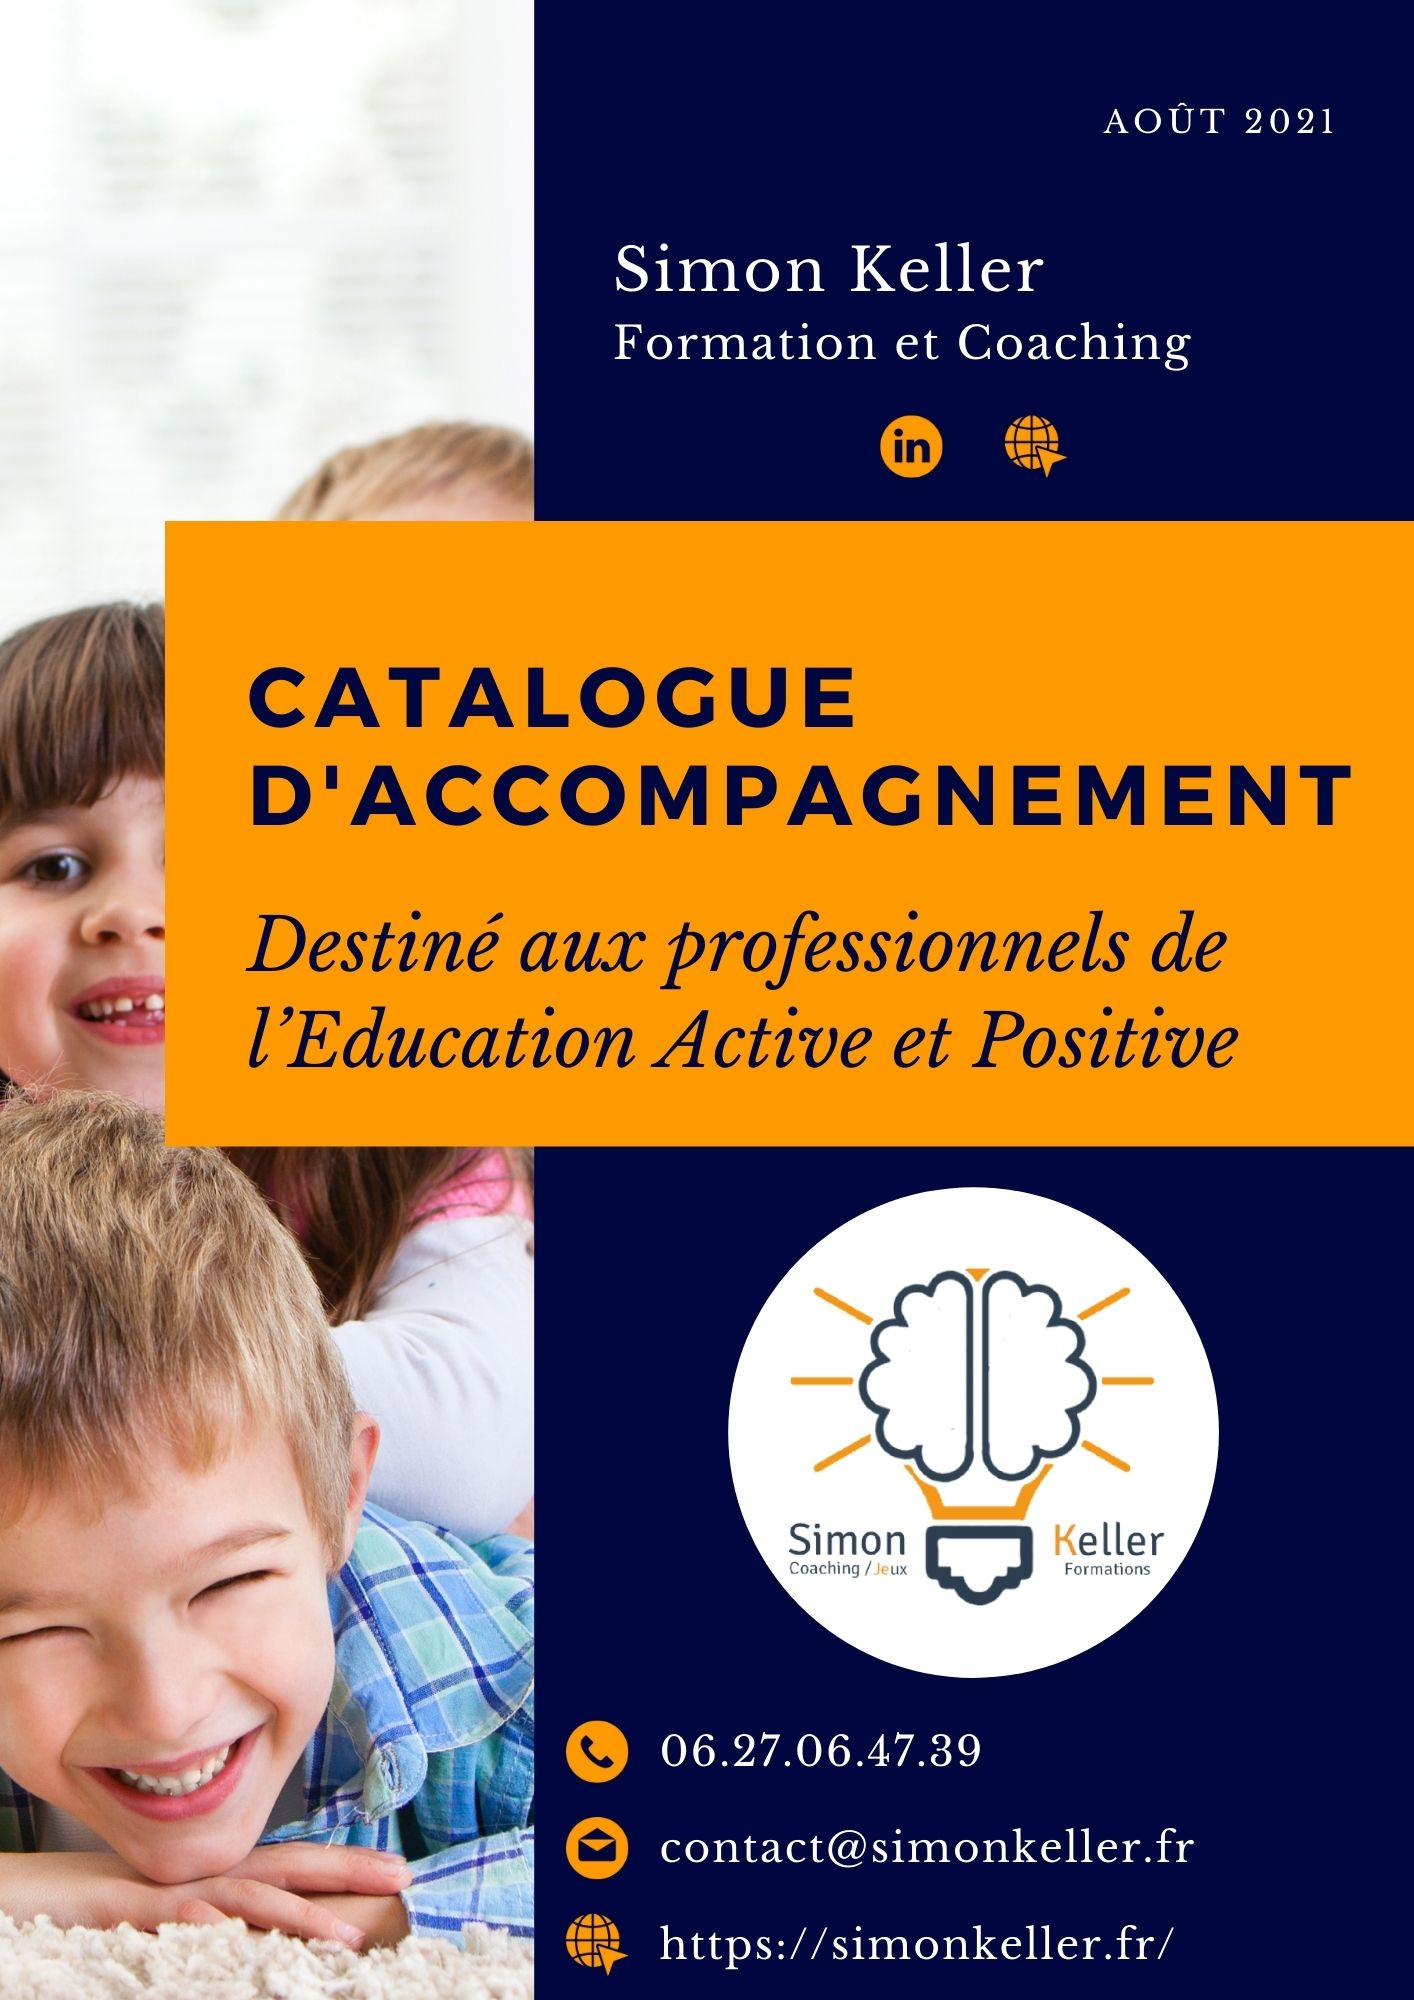 Catalogue d'accompagnement